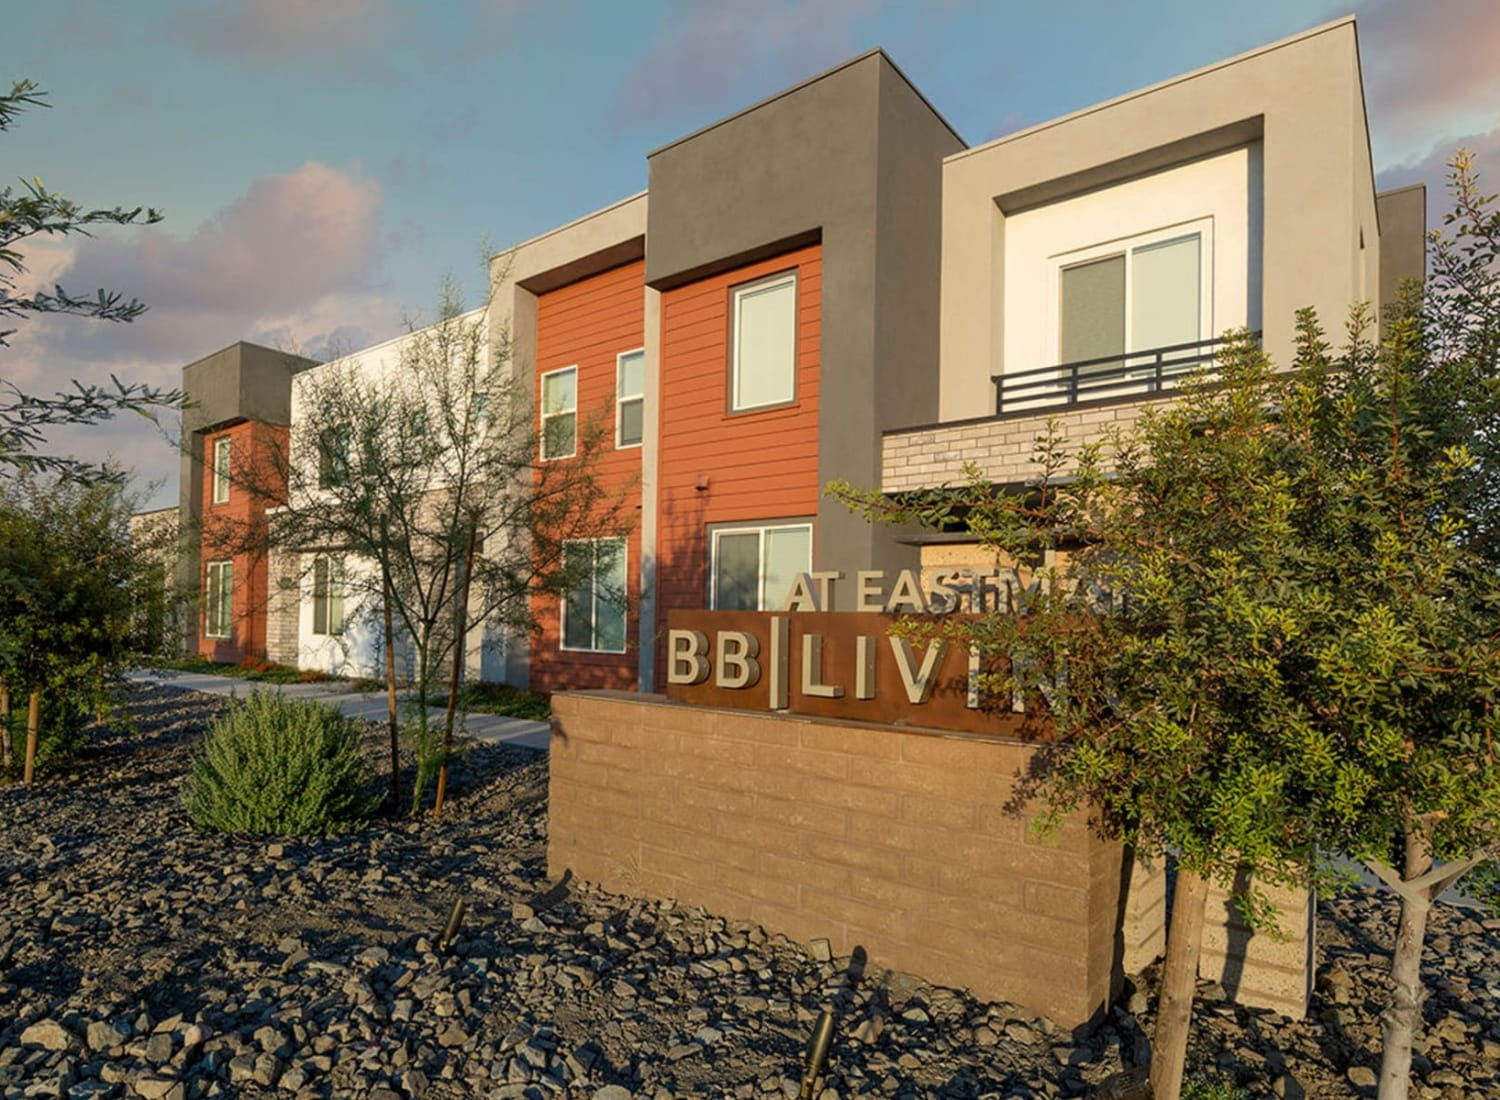 BB Living at Eastmark apartments in Gilbert, Arizona